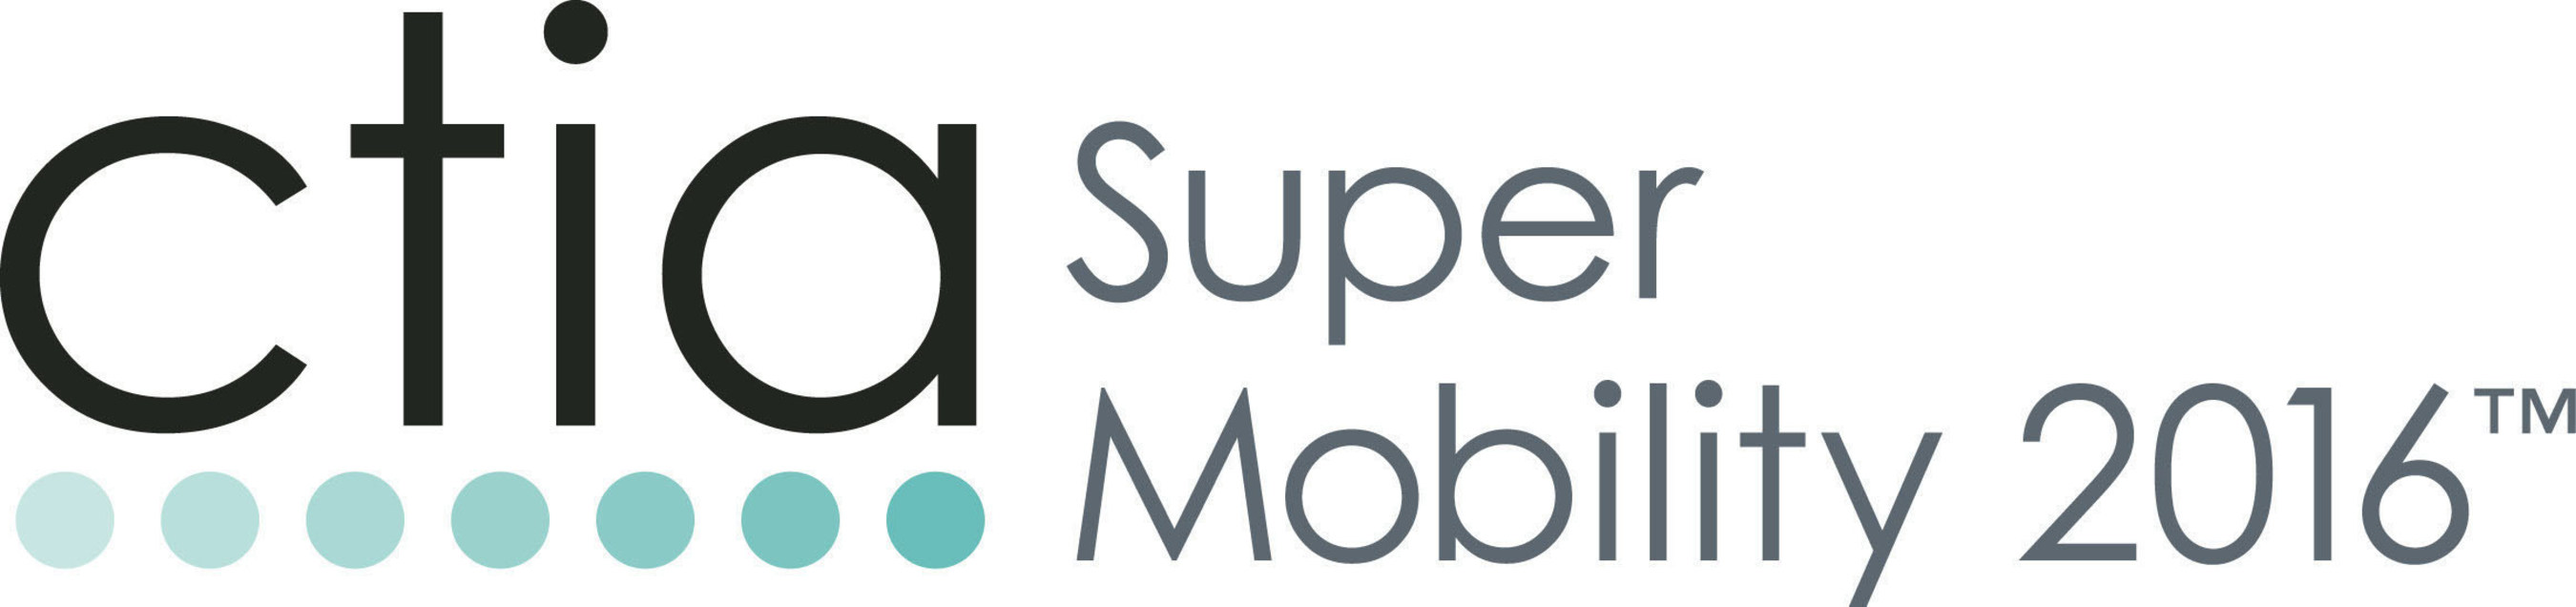 CTIA Super Mobility 2016 Announces the 10th Annual Emerging Technology Awards Winners